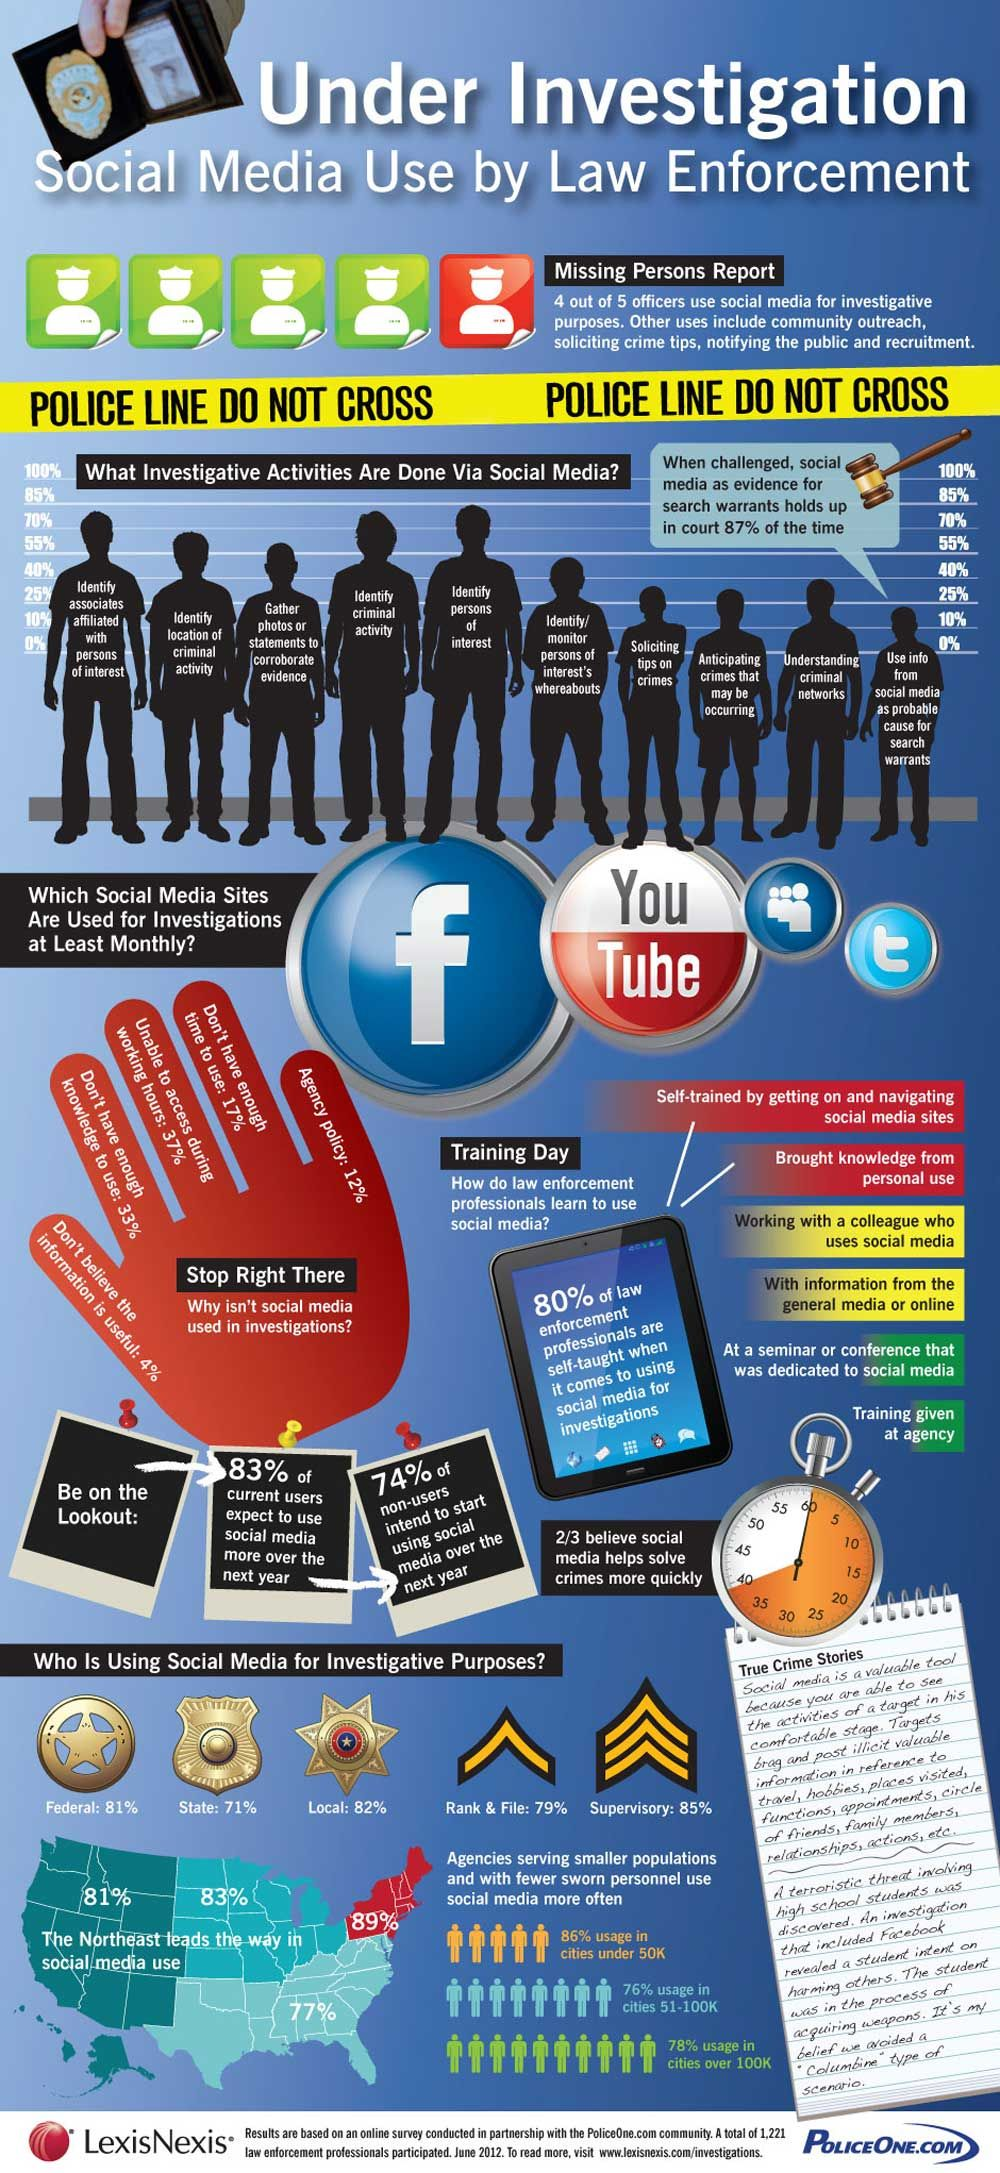 How Is Social Media Used By Law Enforcement?